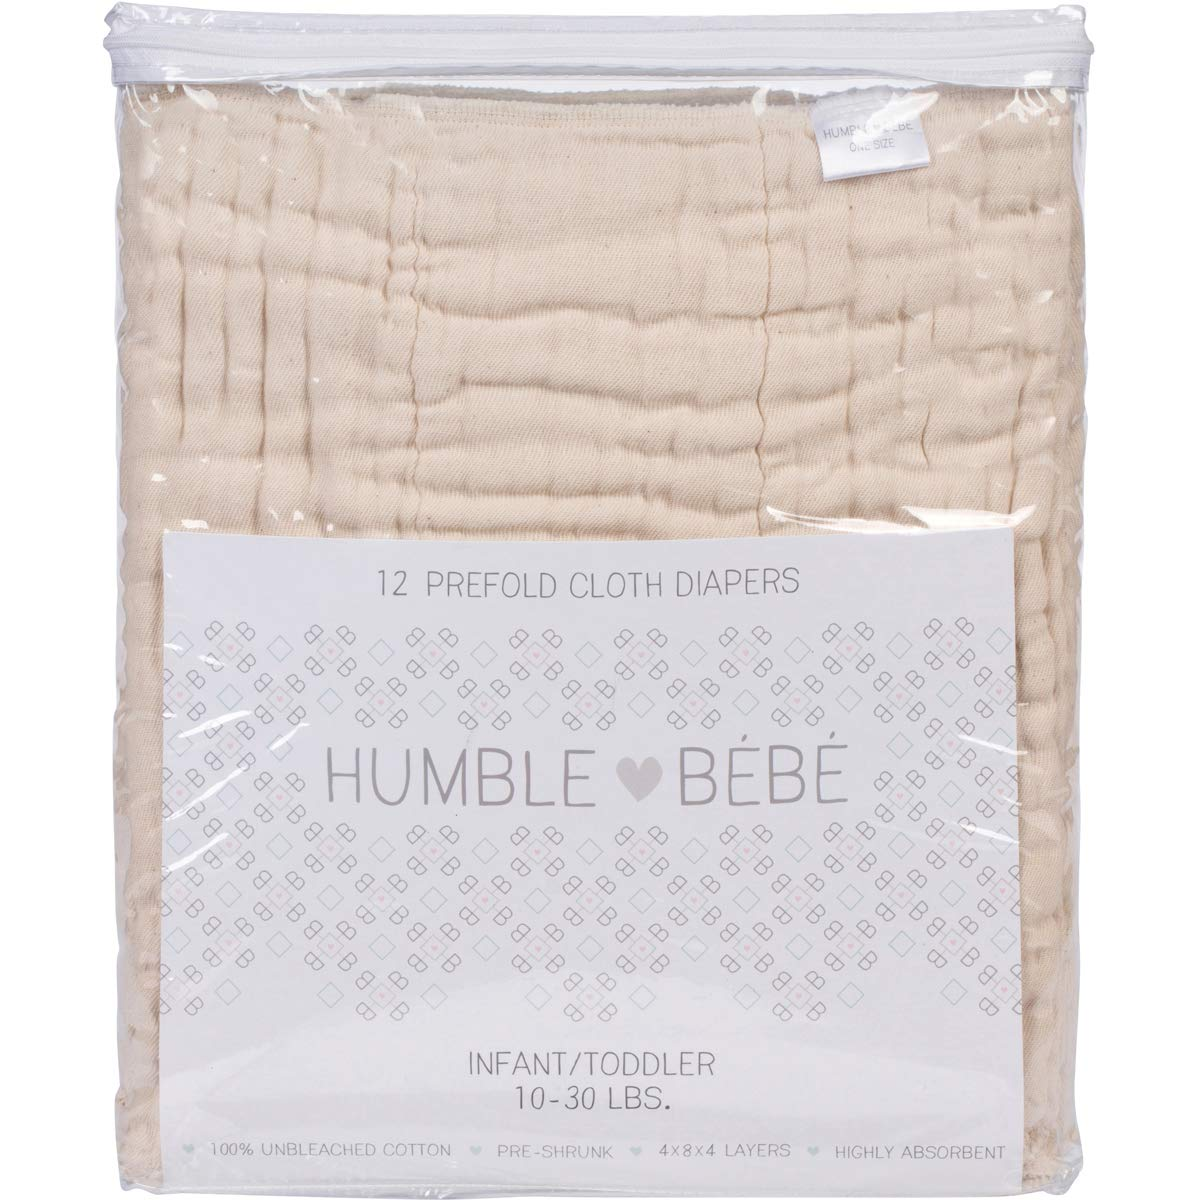 Prefold Cloth Diapers 10-30 lbs Multi-Use 12 Pack Fits Newborn Babies to Toddlers Pre-Washed Unbleached Premium Cotton